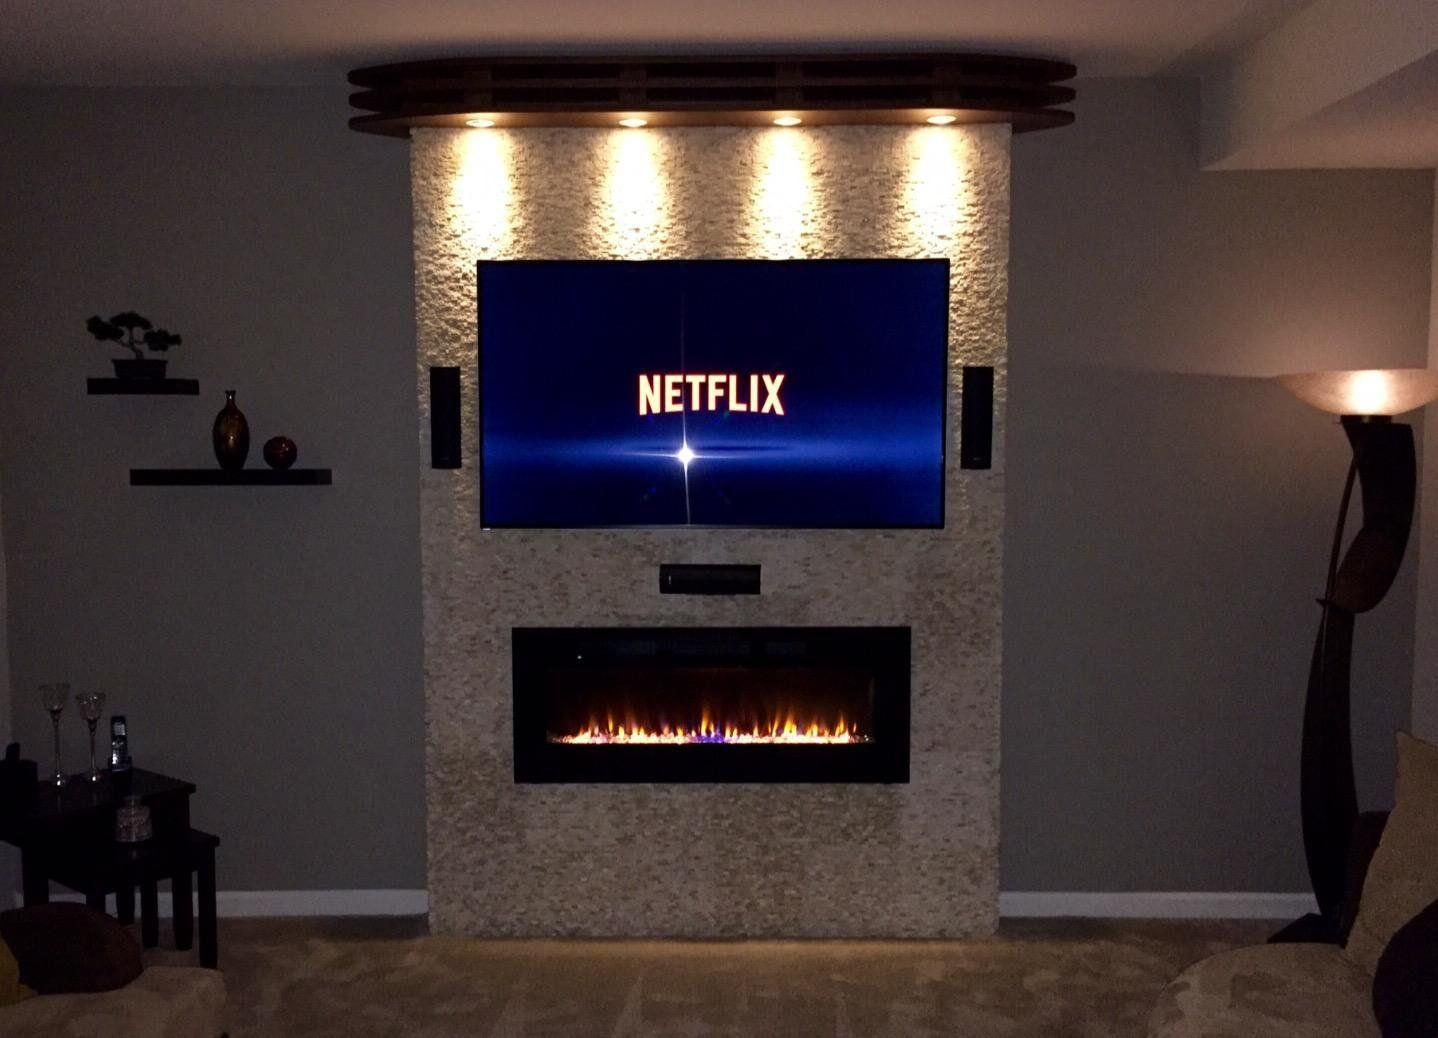 Install Wall Mount Gas Fireplace Home Ideas Collection Basement Fireplace Wall Mount Electric Fireplace Electric Fireplace Wall